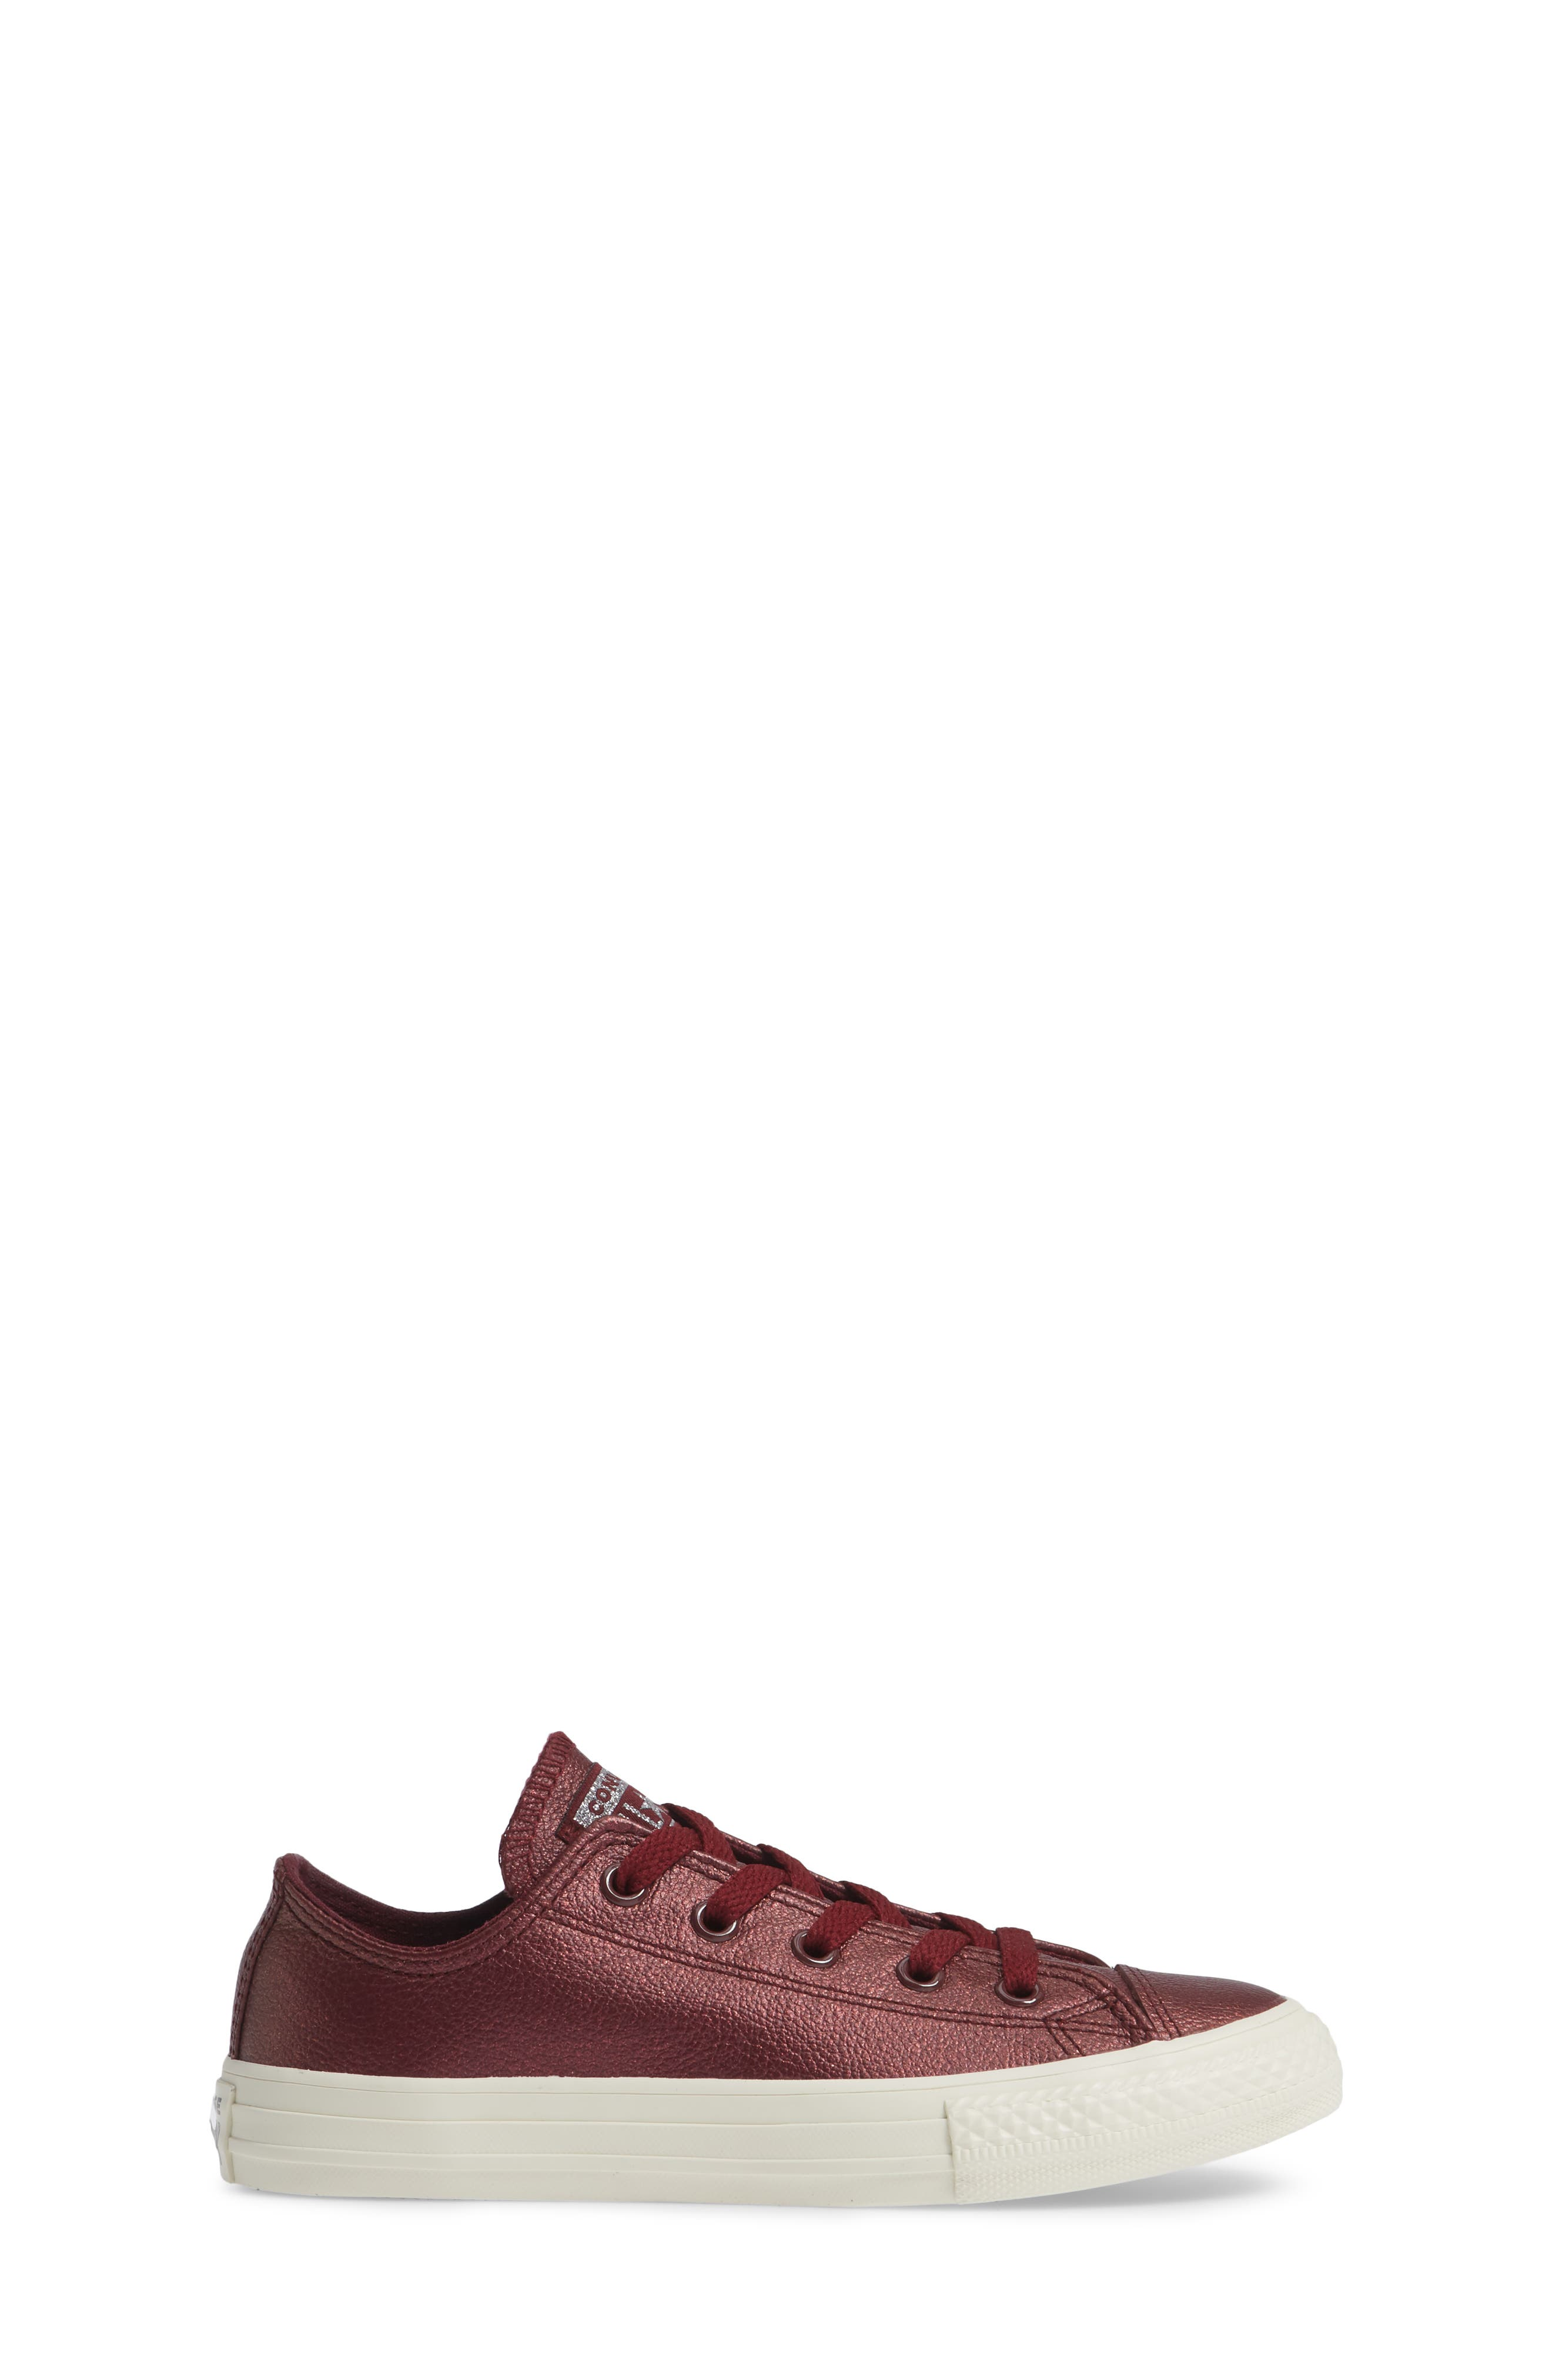 Chuck Taylor<sup>®</sup> All Star<sup>®</sup> Metallic Faux Leather Ox Sneaker,                             Alternate thumbnail 6, color,                             Dark Burgundy